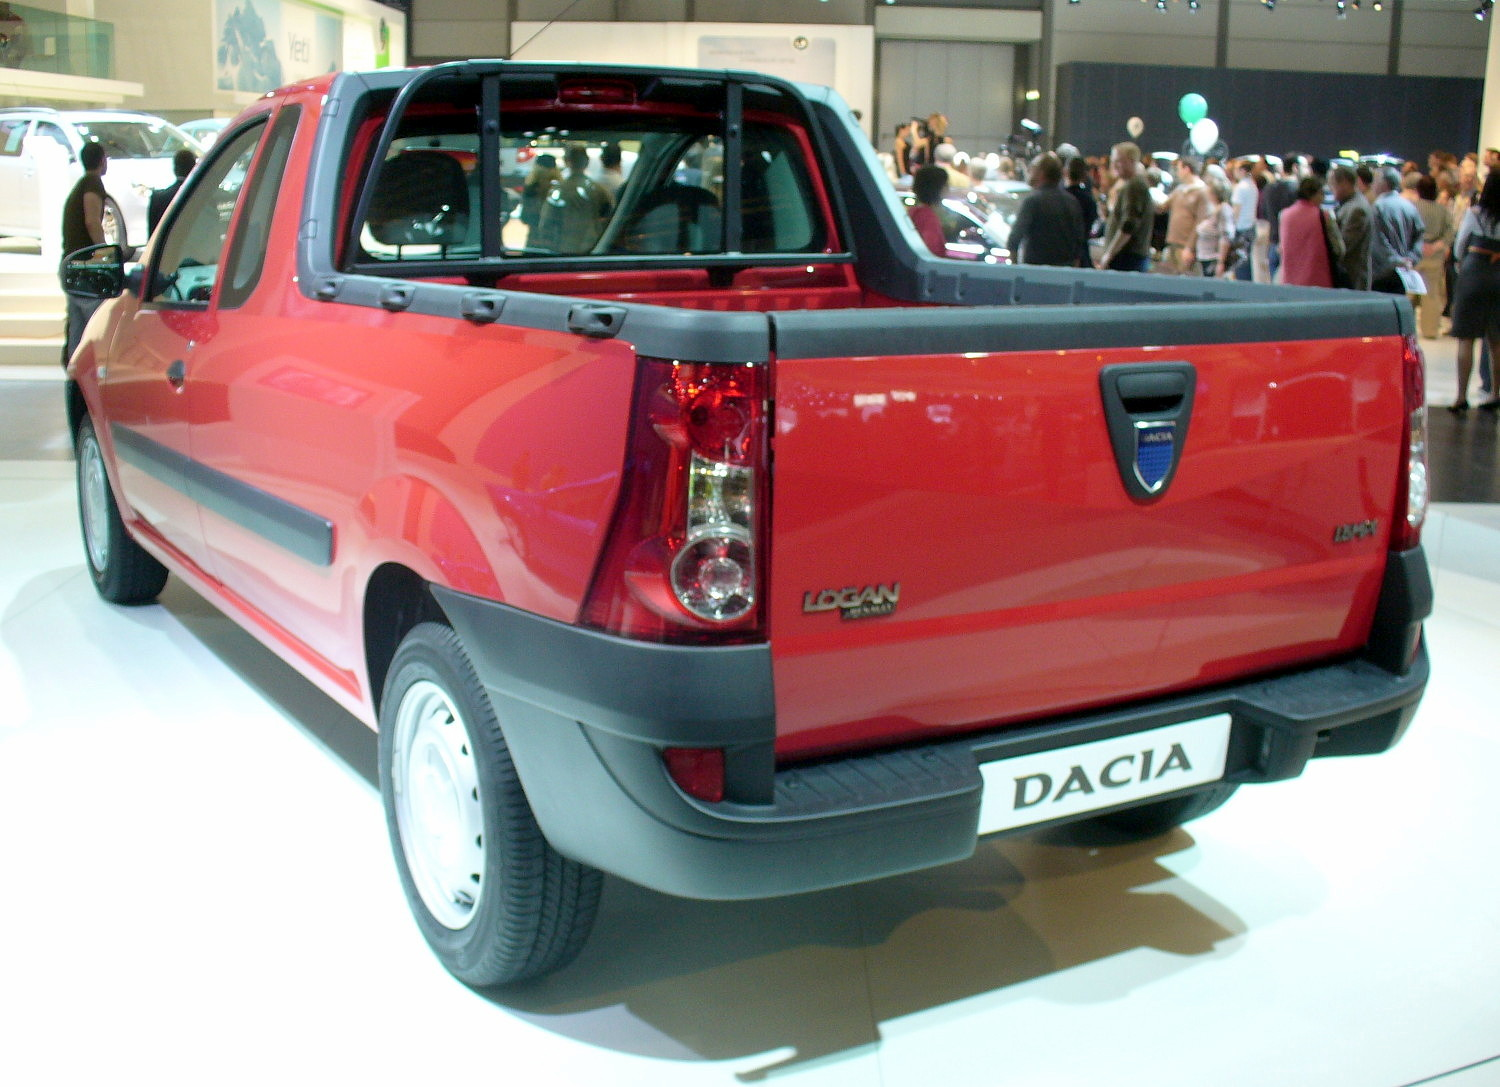 dacia logan pick up technical details history photos on. Black Bedroom Furniture Sets. Home Design Ideas